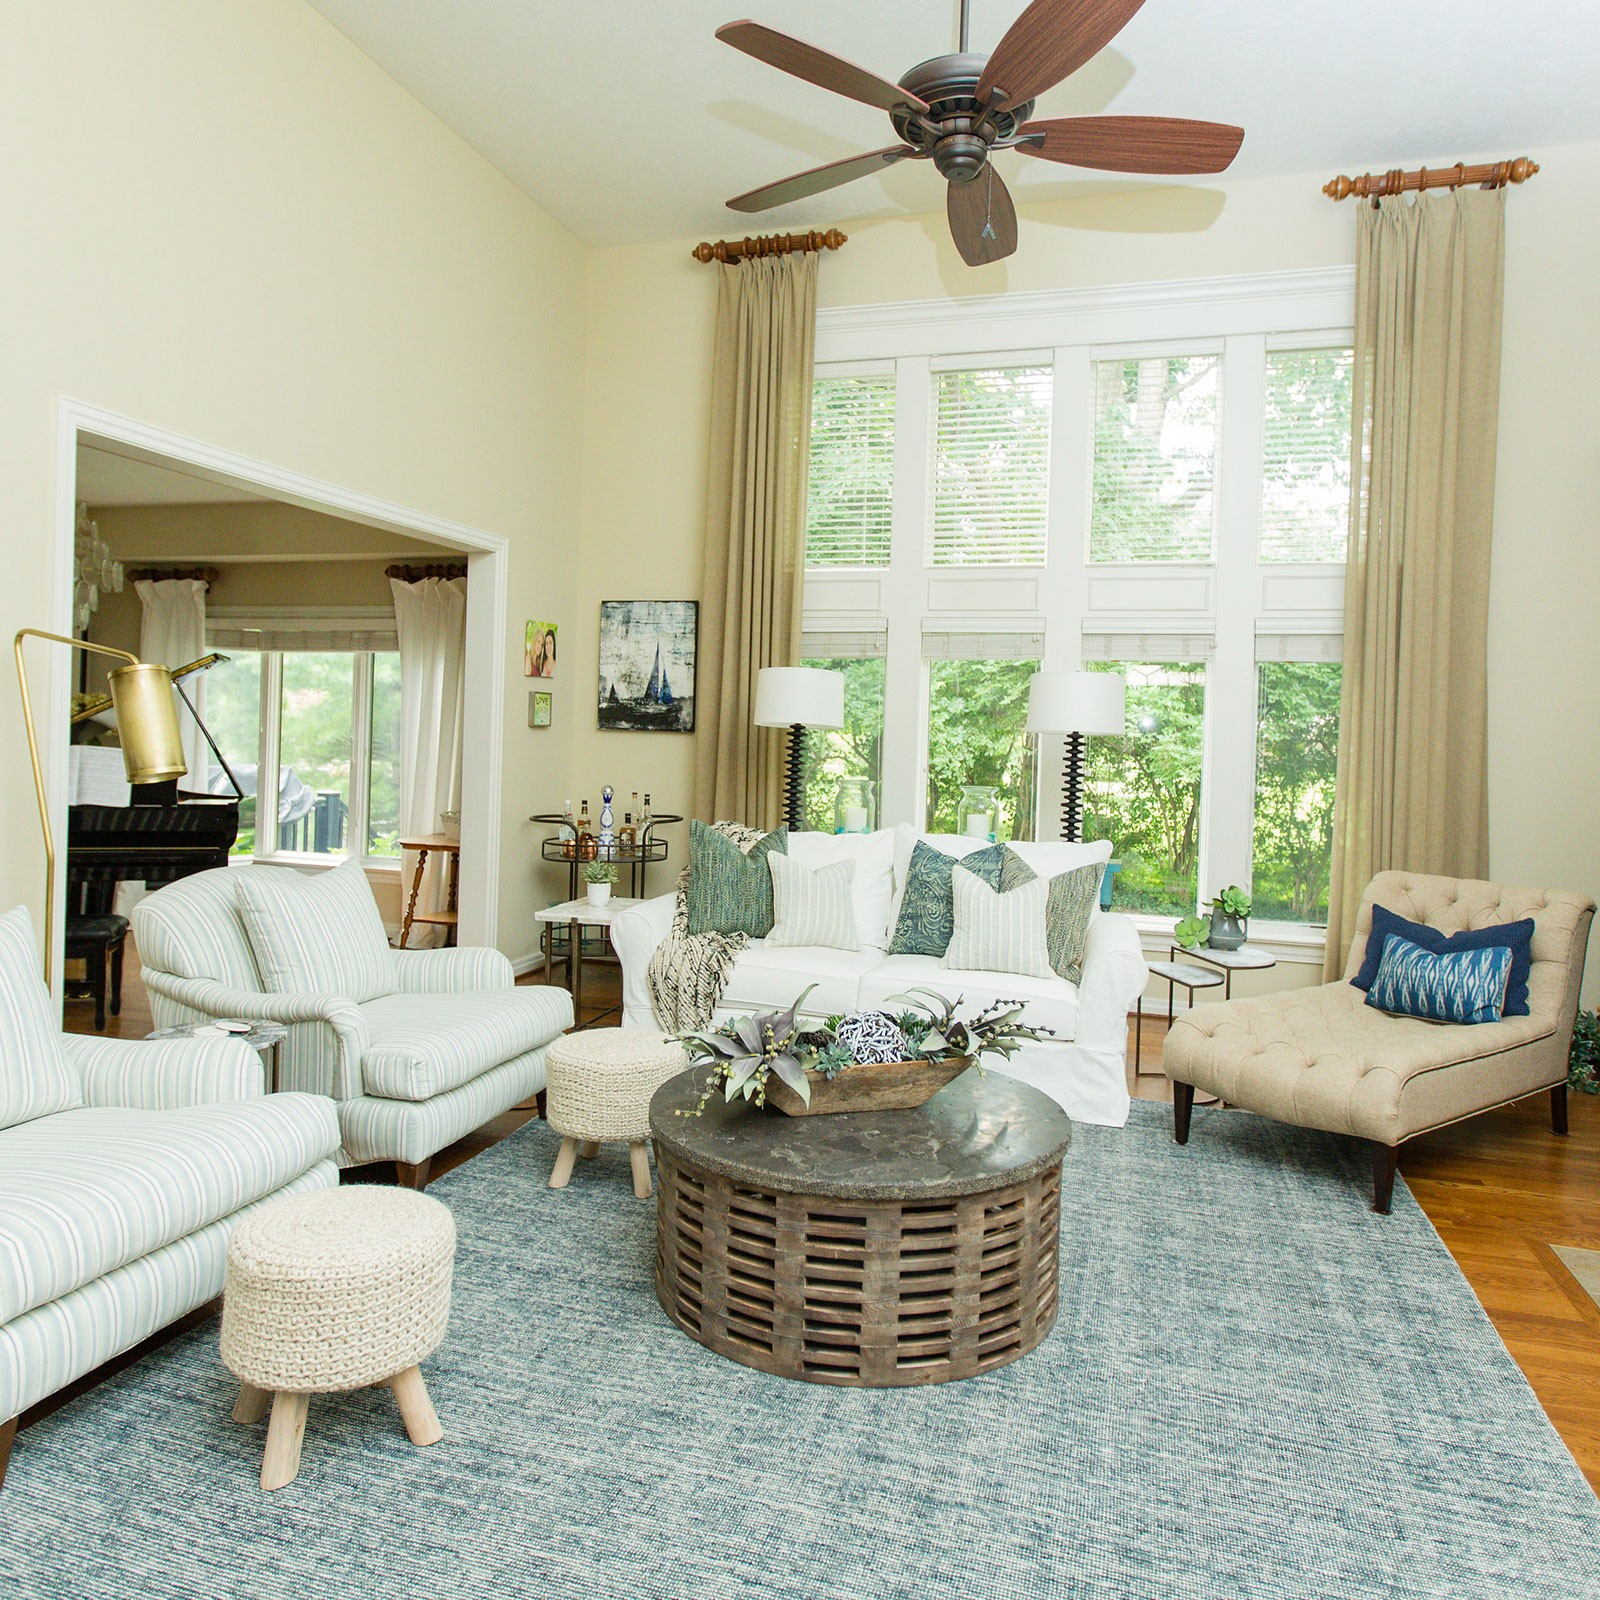 Bring The Shore Into Home With Beach Style Living Room: Comfortable Coastal Glam